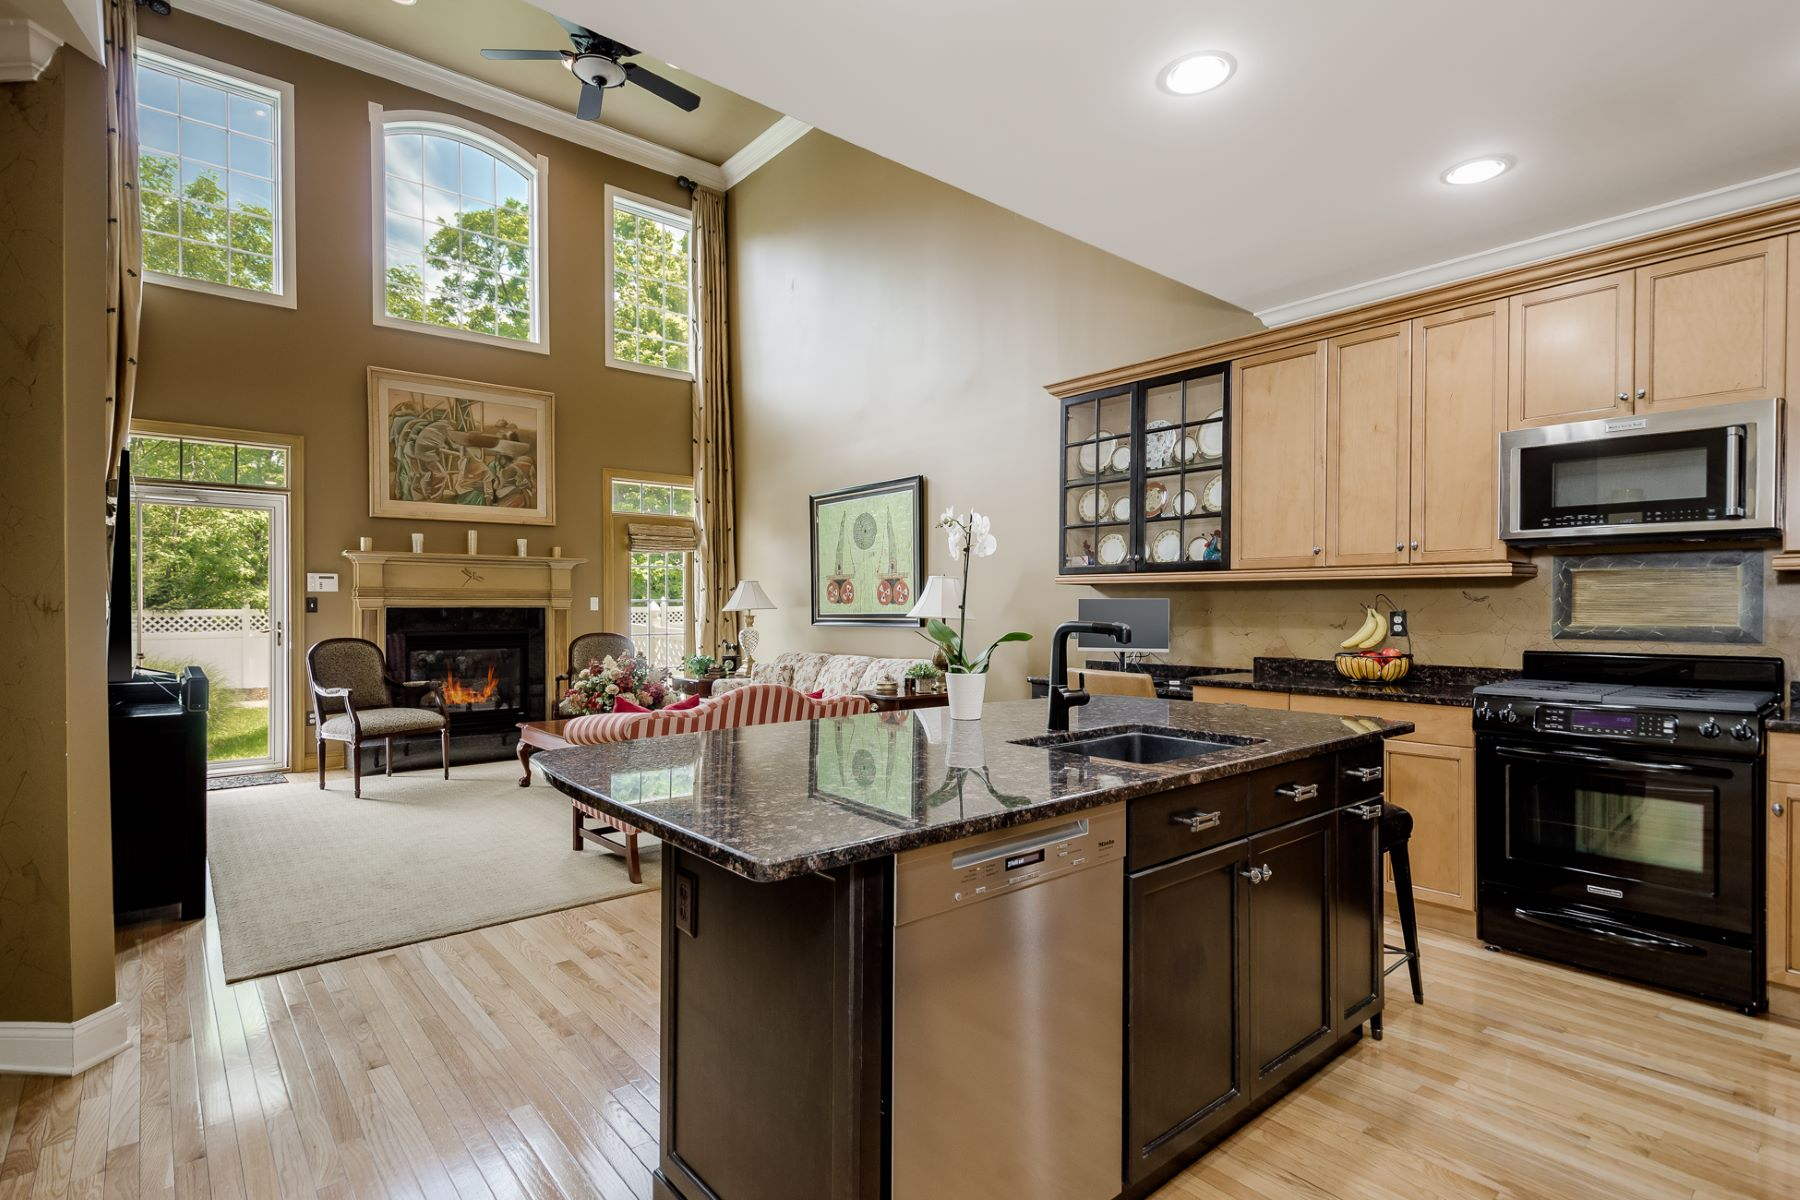 Additional photo for property listing at Live Well and Carefree in Lawrenceville's Ventana 40 Schindler Court, Lawrenceville, New Jersey 08648 United States